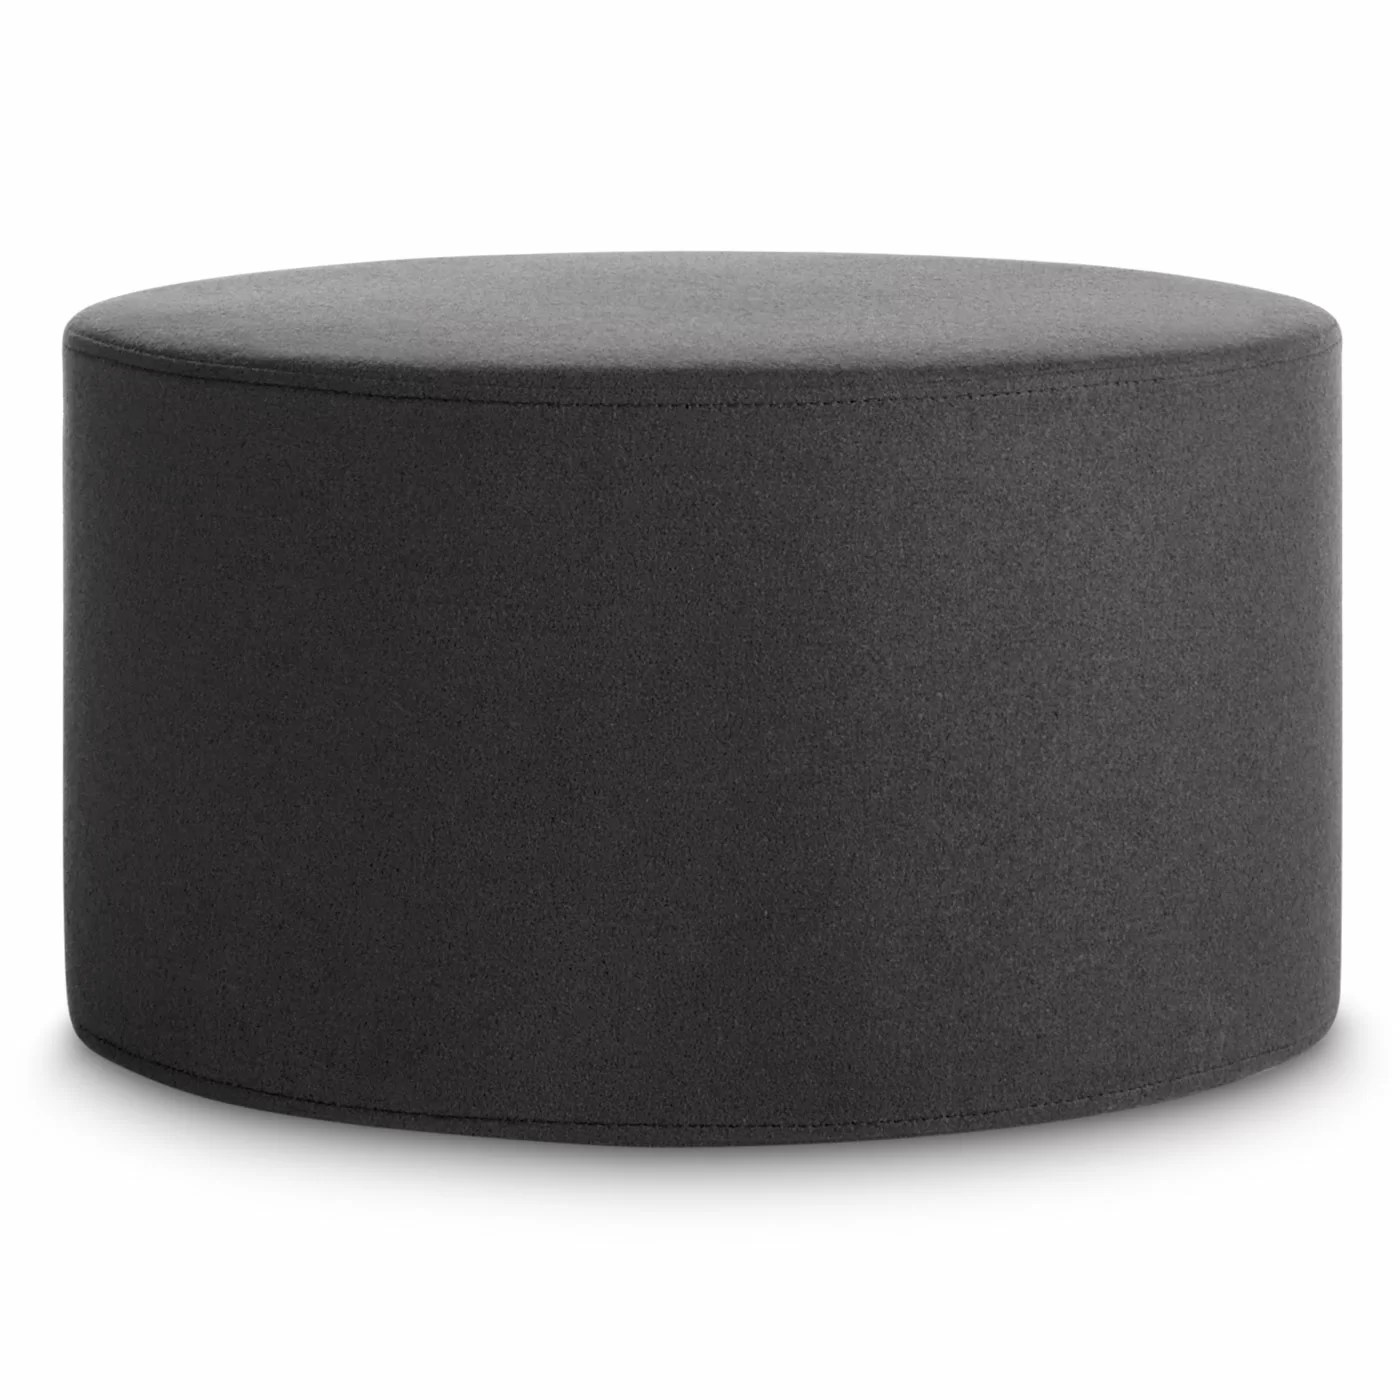 Extra Large Pouf Ottoman Bumper Large Ottoman Reviews Allmodern